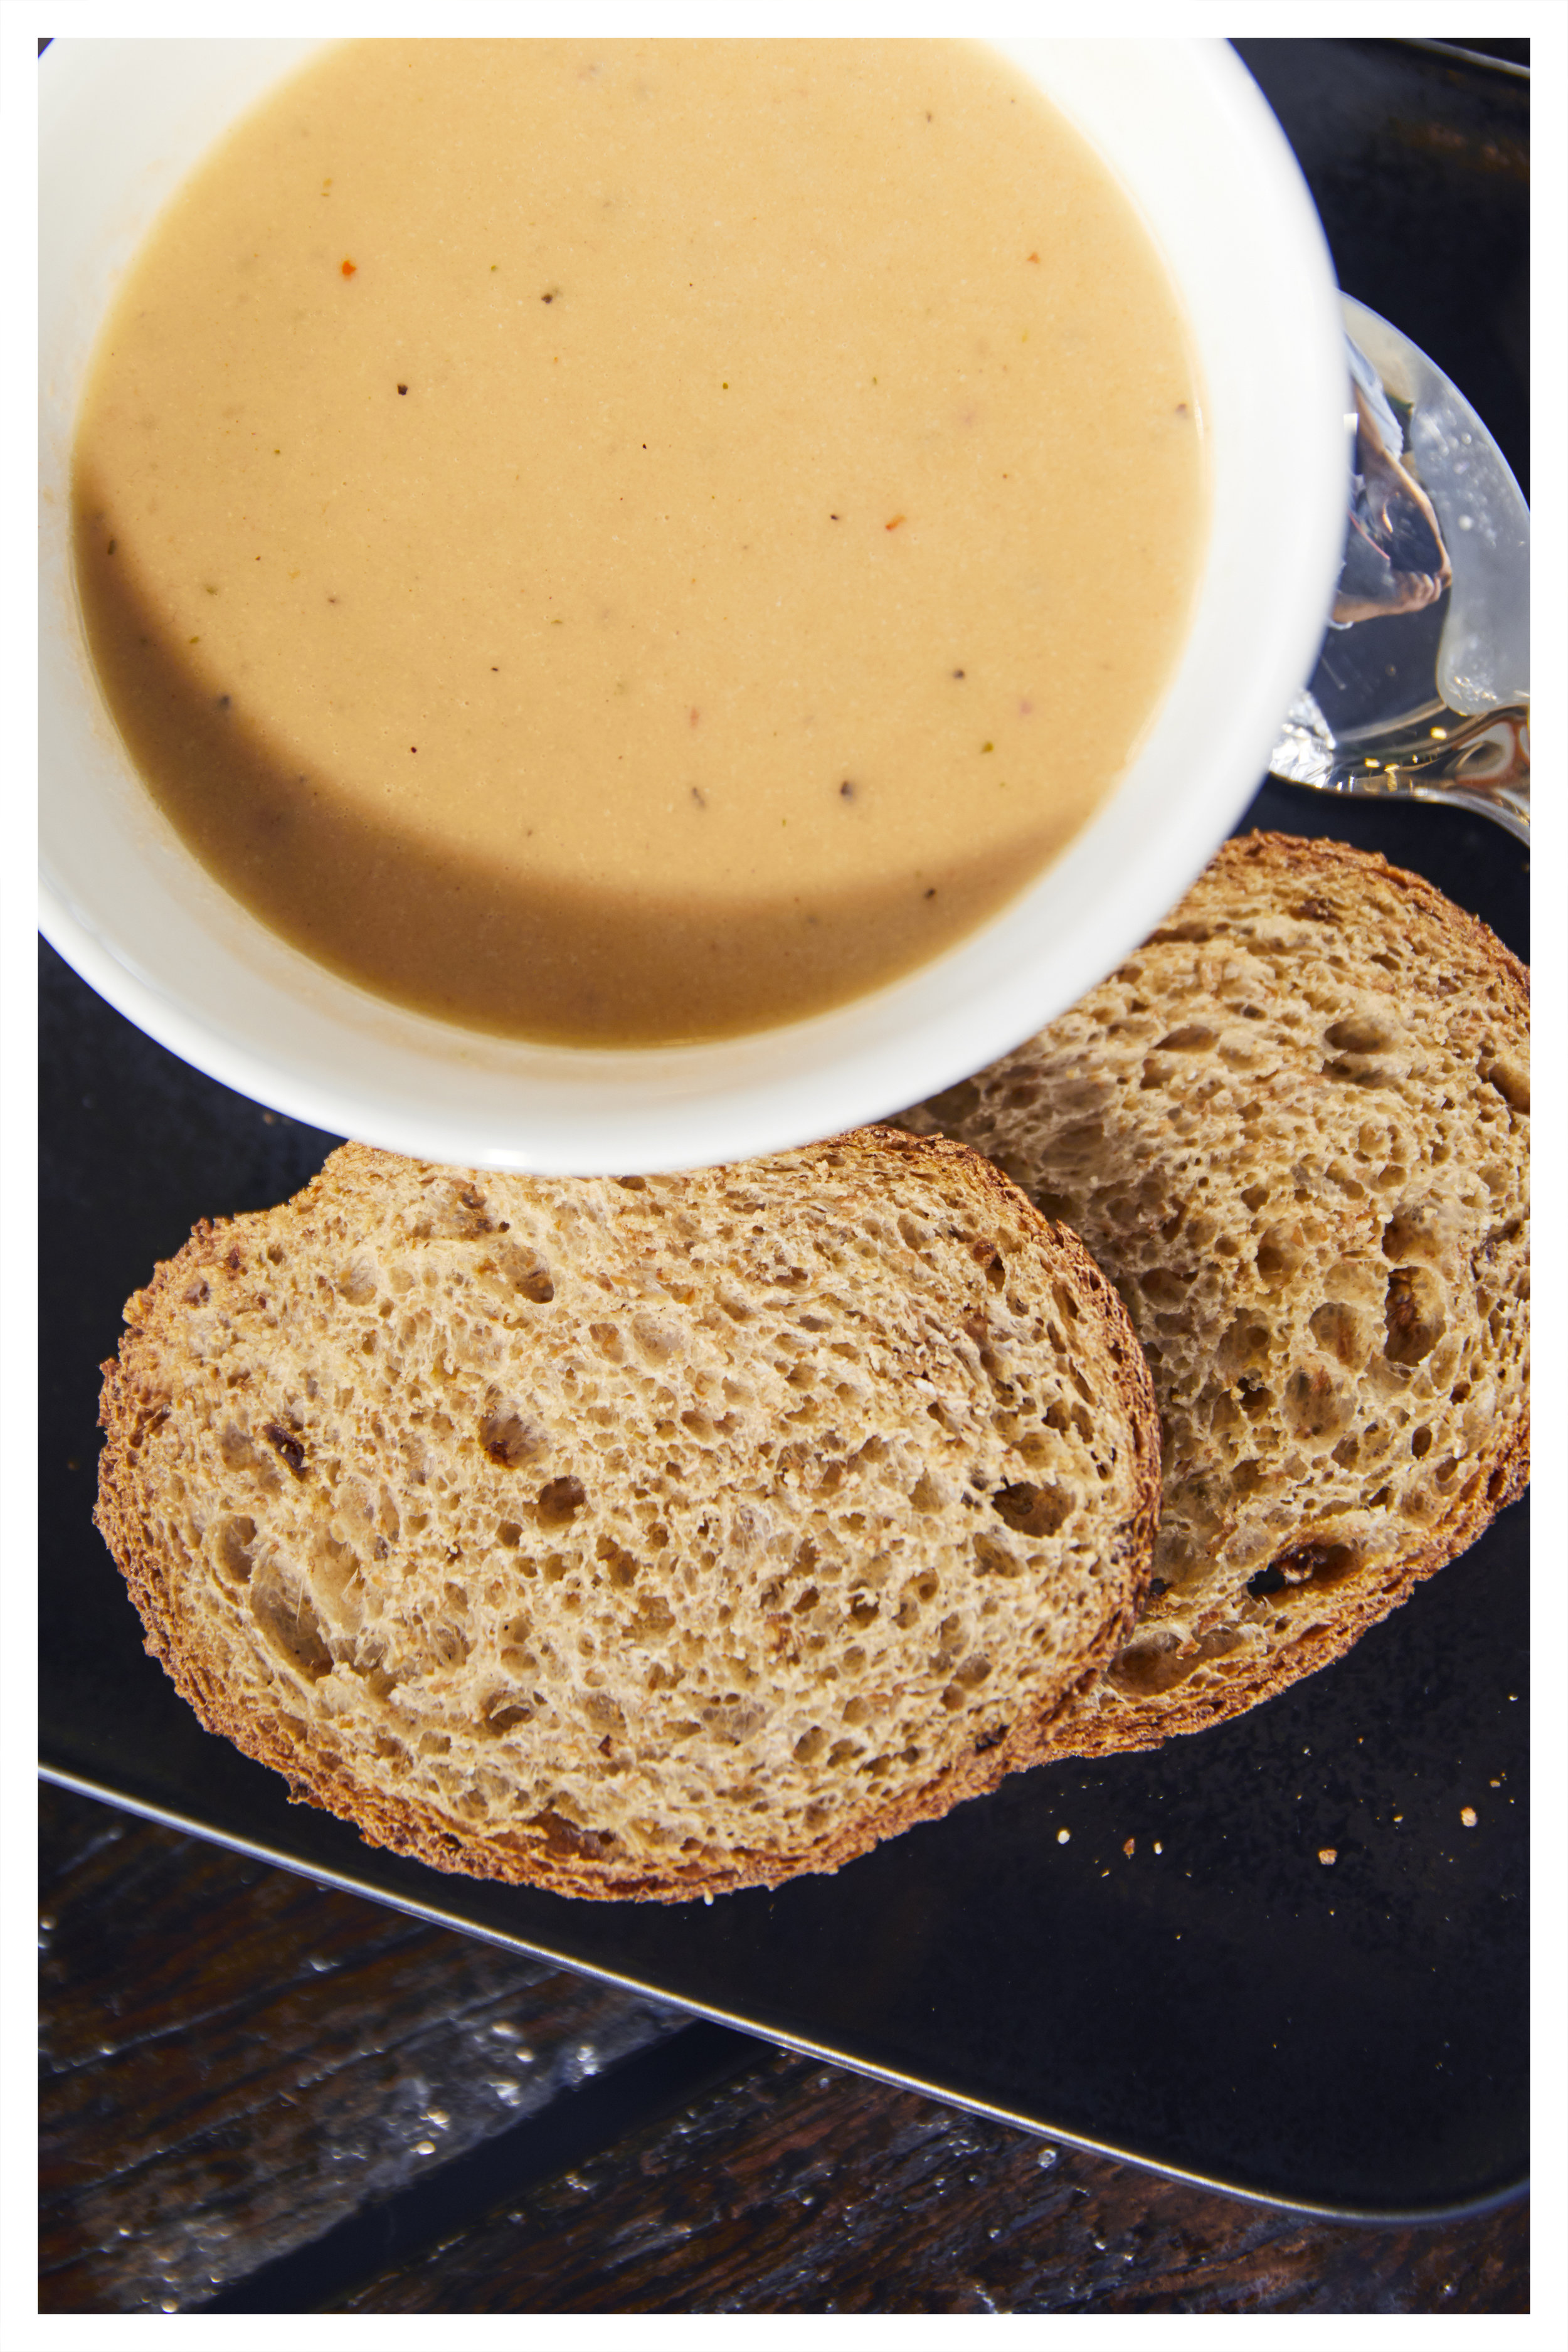 Soups  - Our famous Lobster soup, made fresh from scratch every day á la Bryggjan, served with fresh bread from the local bakery, Vegetable Soup and Traditional Icelandic Lamb Soup.